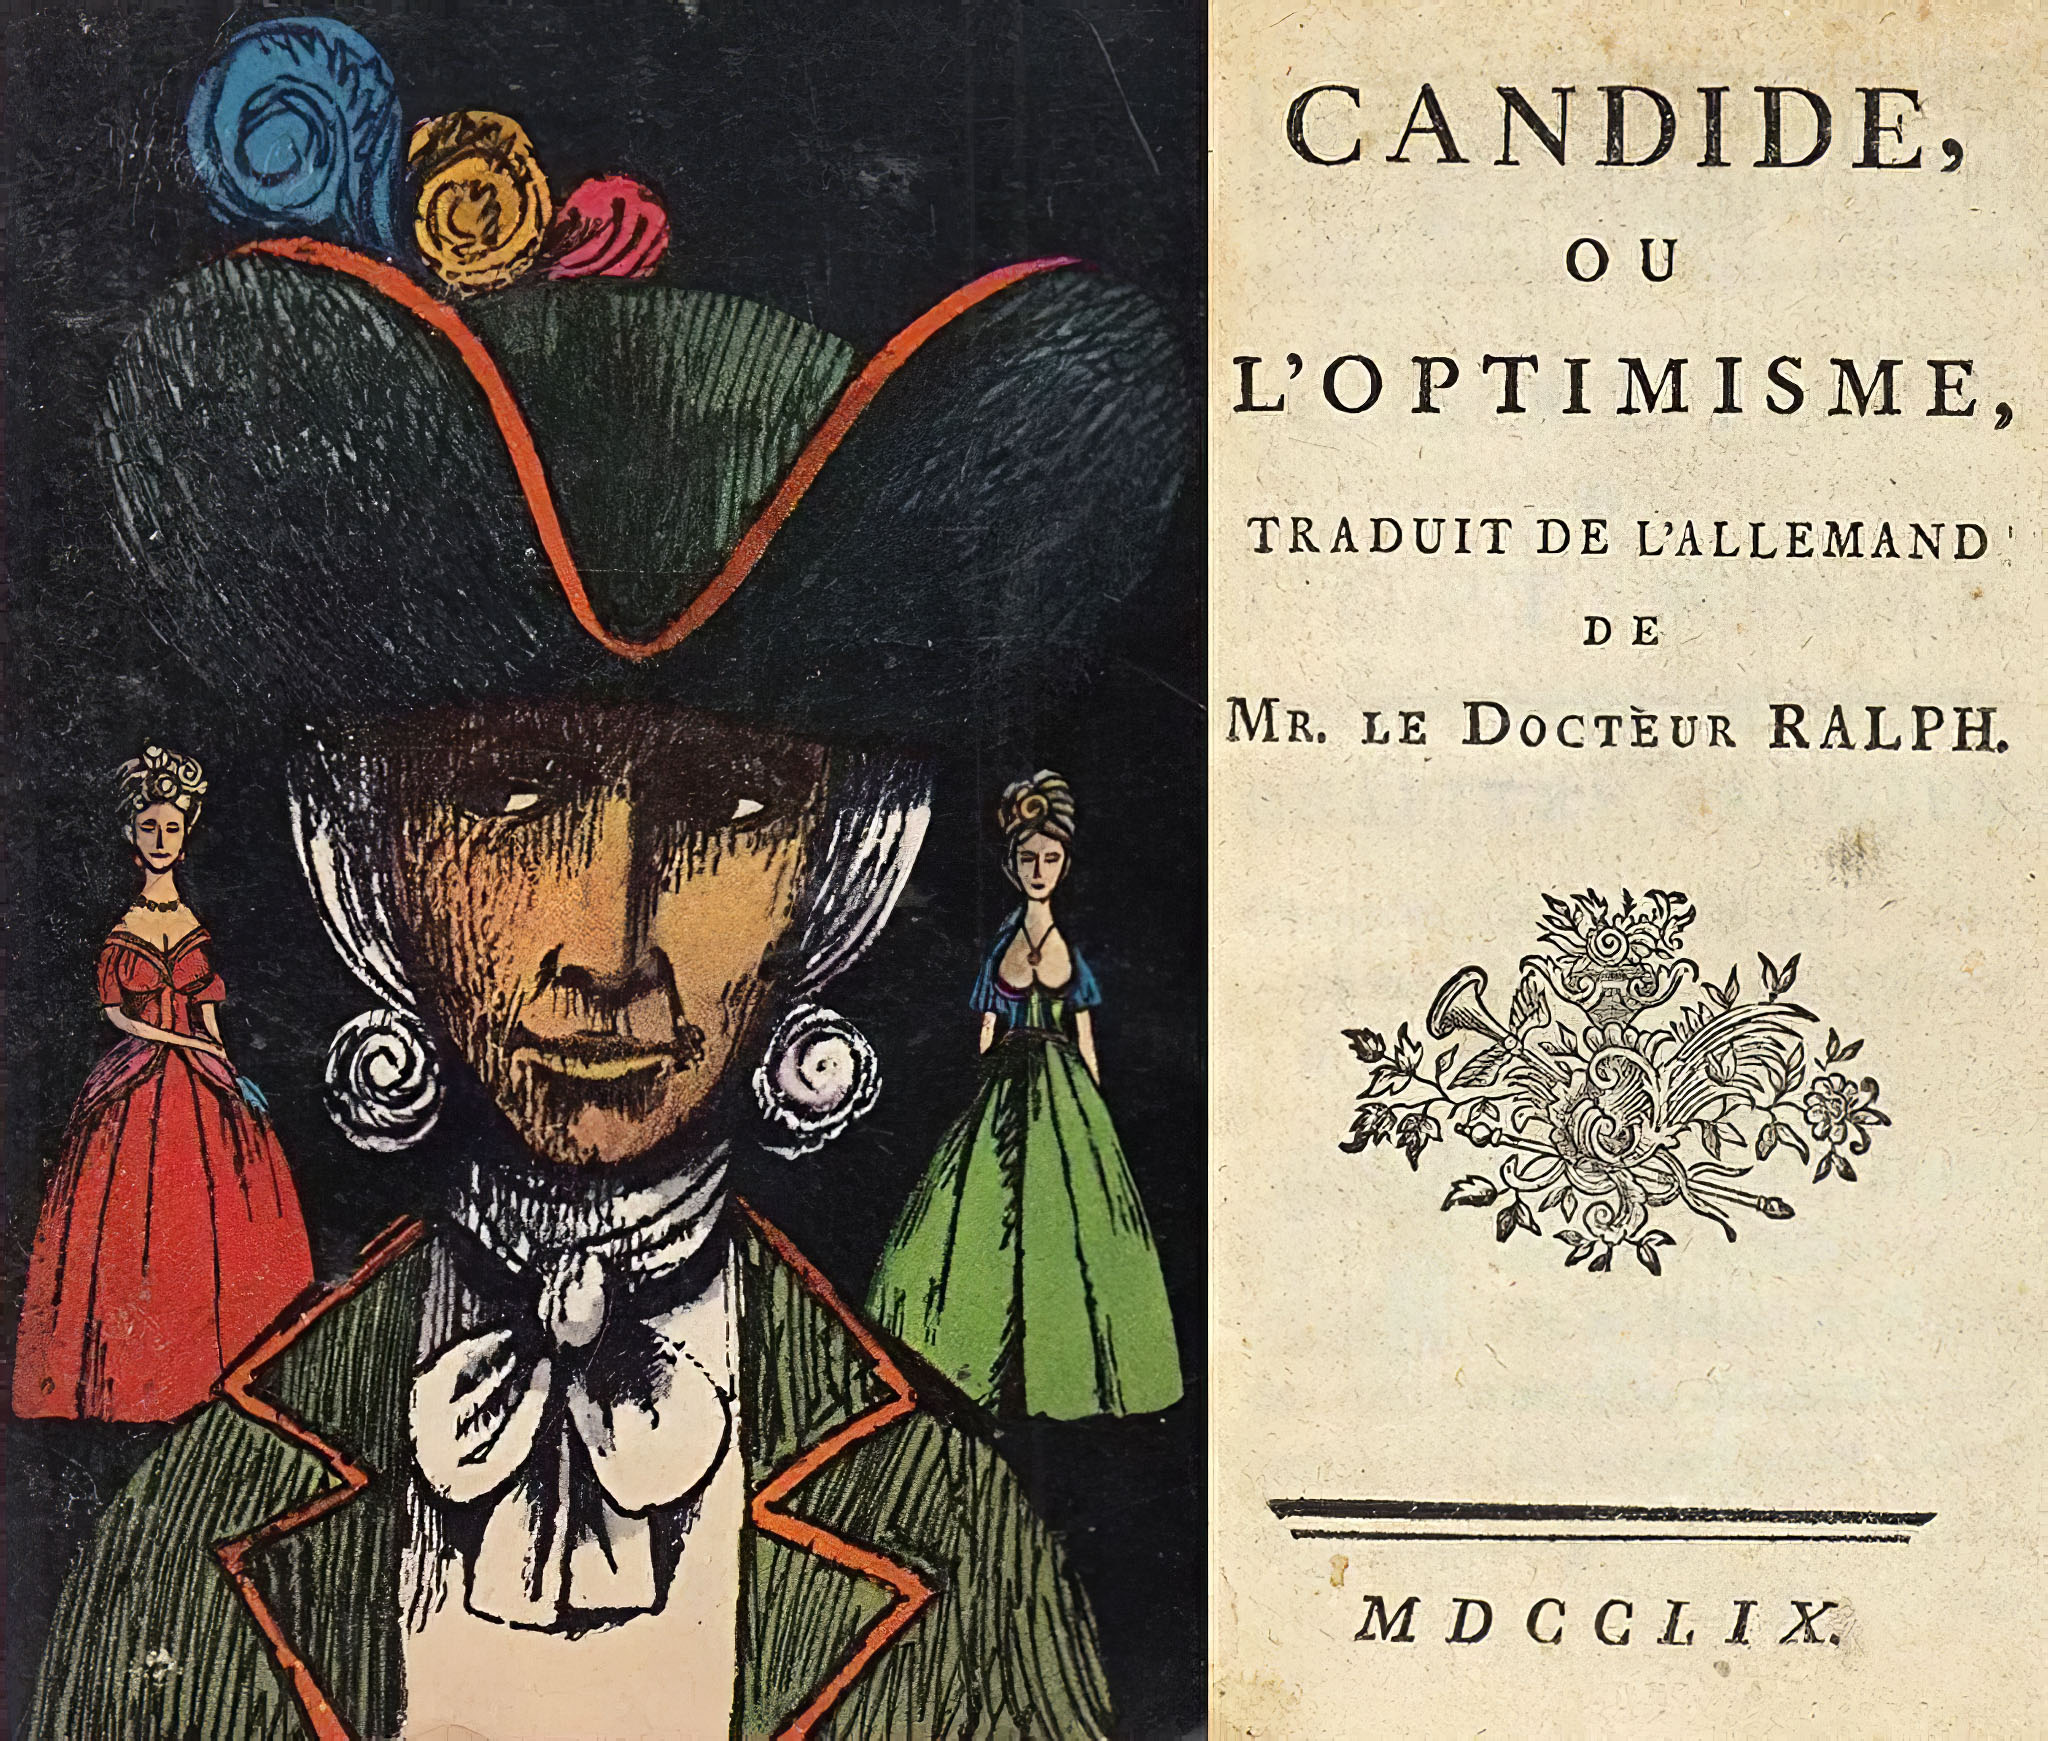 """Recognized as Voltaire's magnum opus, this short novel has enjoyed both great success and great scandal. Immediately after its secretive publication under the pseudonym of """"Dr. Ralph"""", the book was banned on account of its perceived religious blasphemy, political sedition, and intellectual virulence. However, with its sharp wit and insightful portrayal of the human condition, Candide has since become a revered classic, one of the most influential and most eulogized works of global literature."""